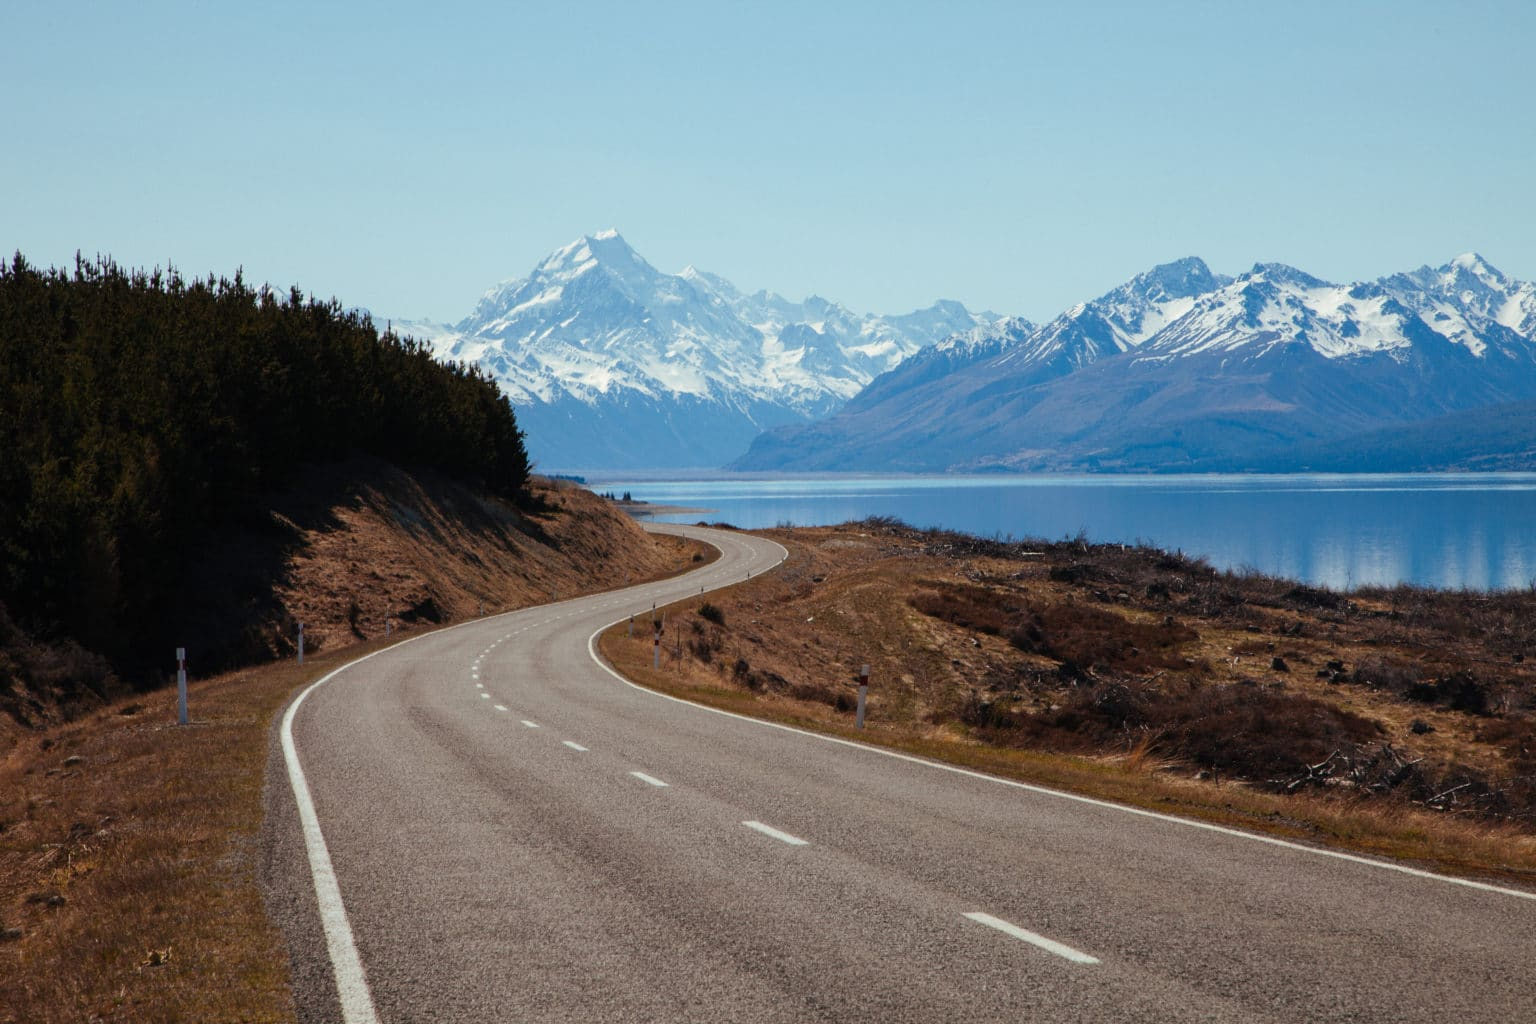 Road to Mount Cook, Aoraki National Park, New Zealand